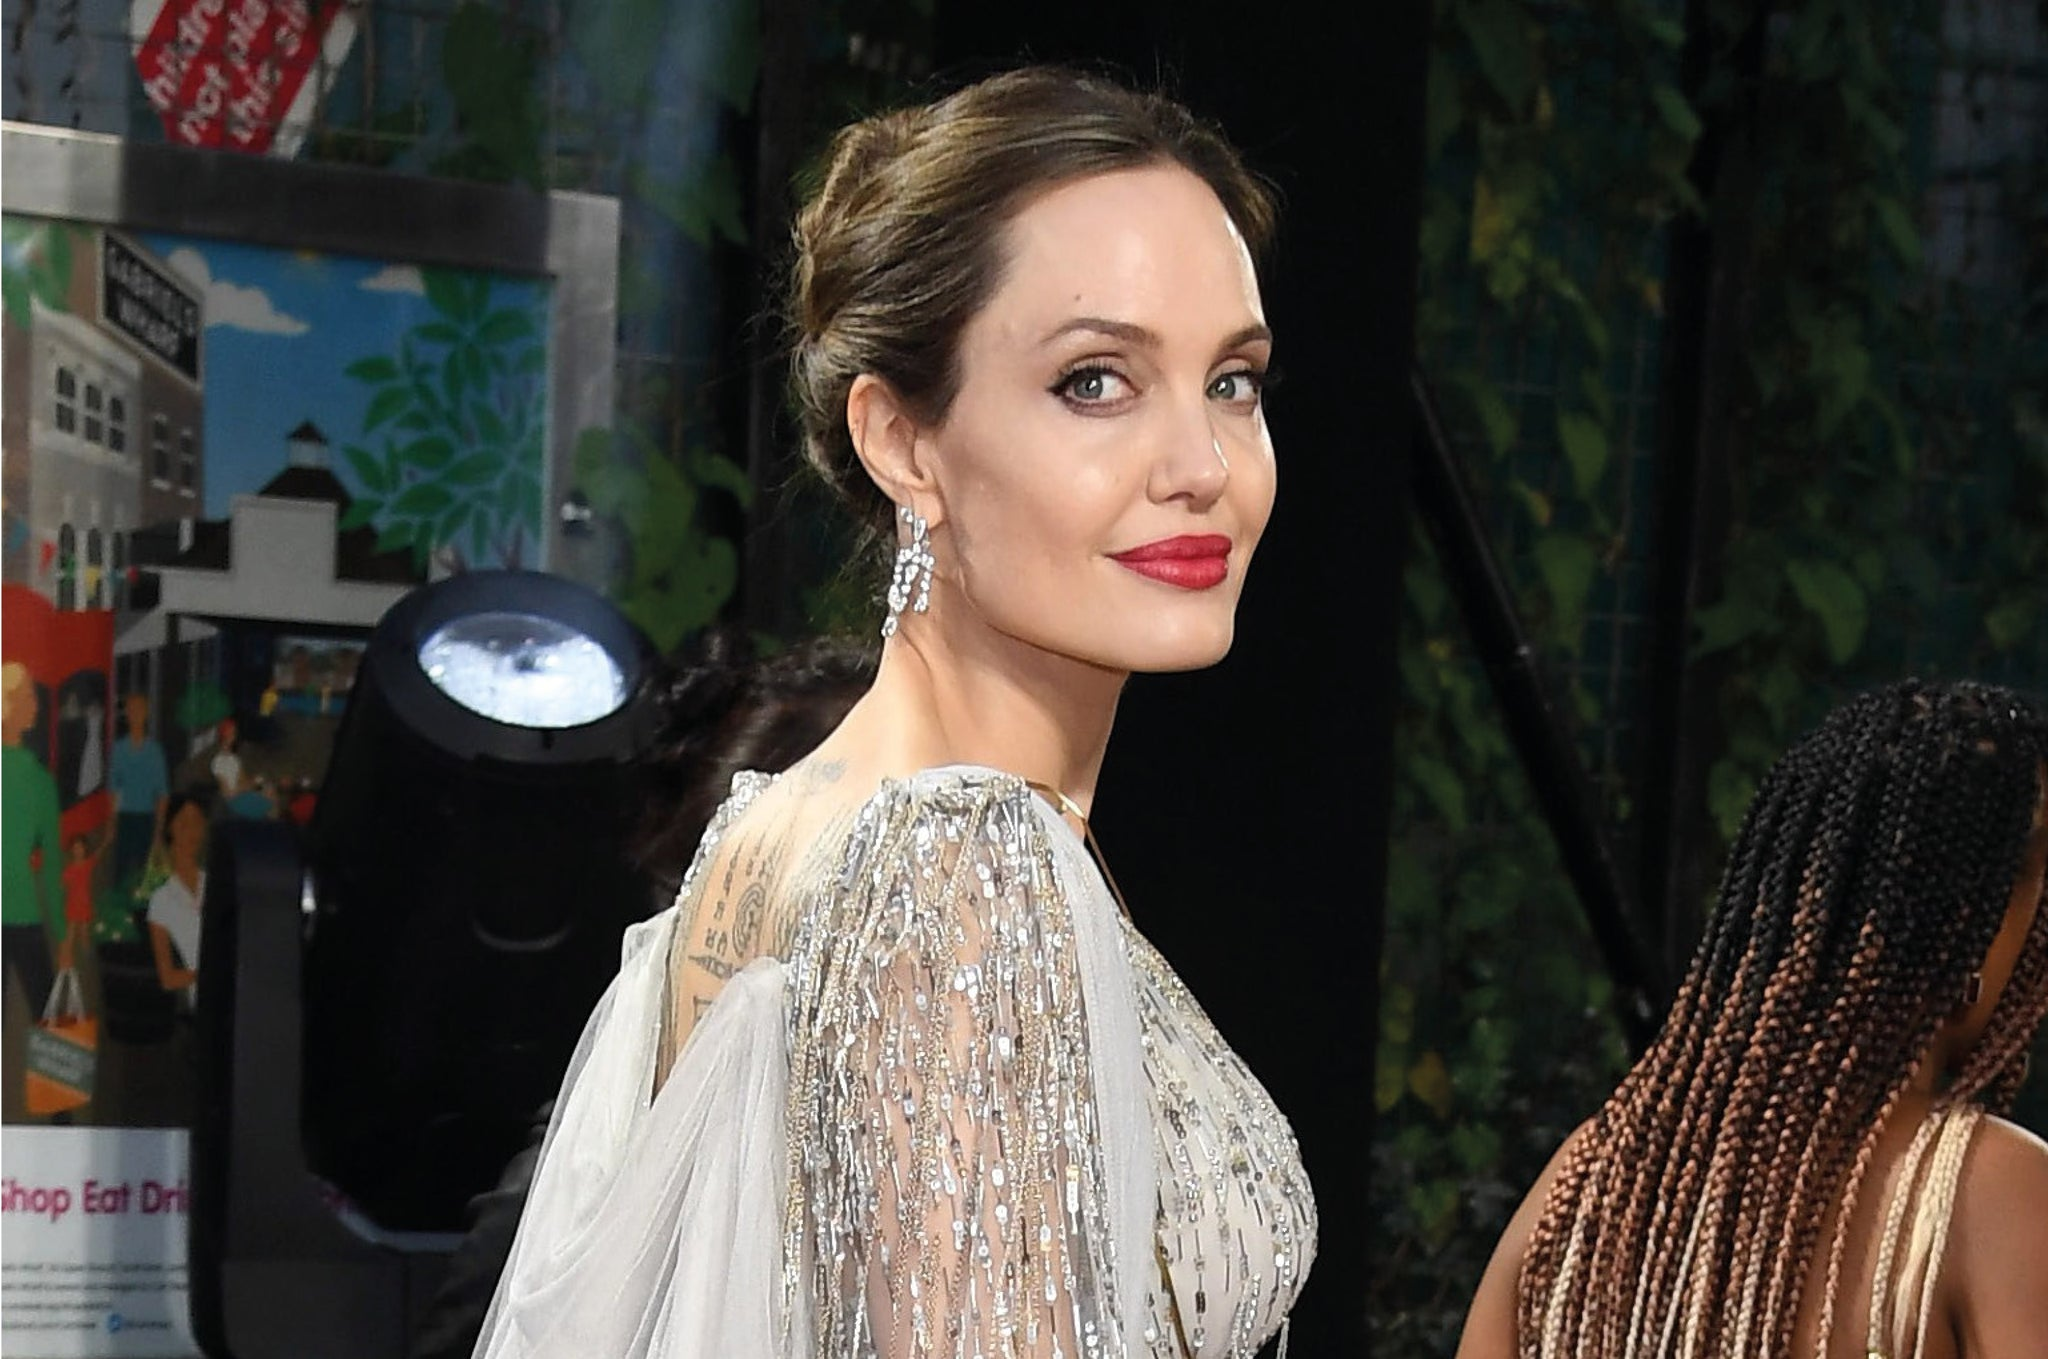 Angelina Jolie Wears a Bold Red Lip at a Red-Carpet Event